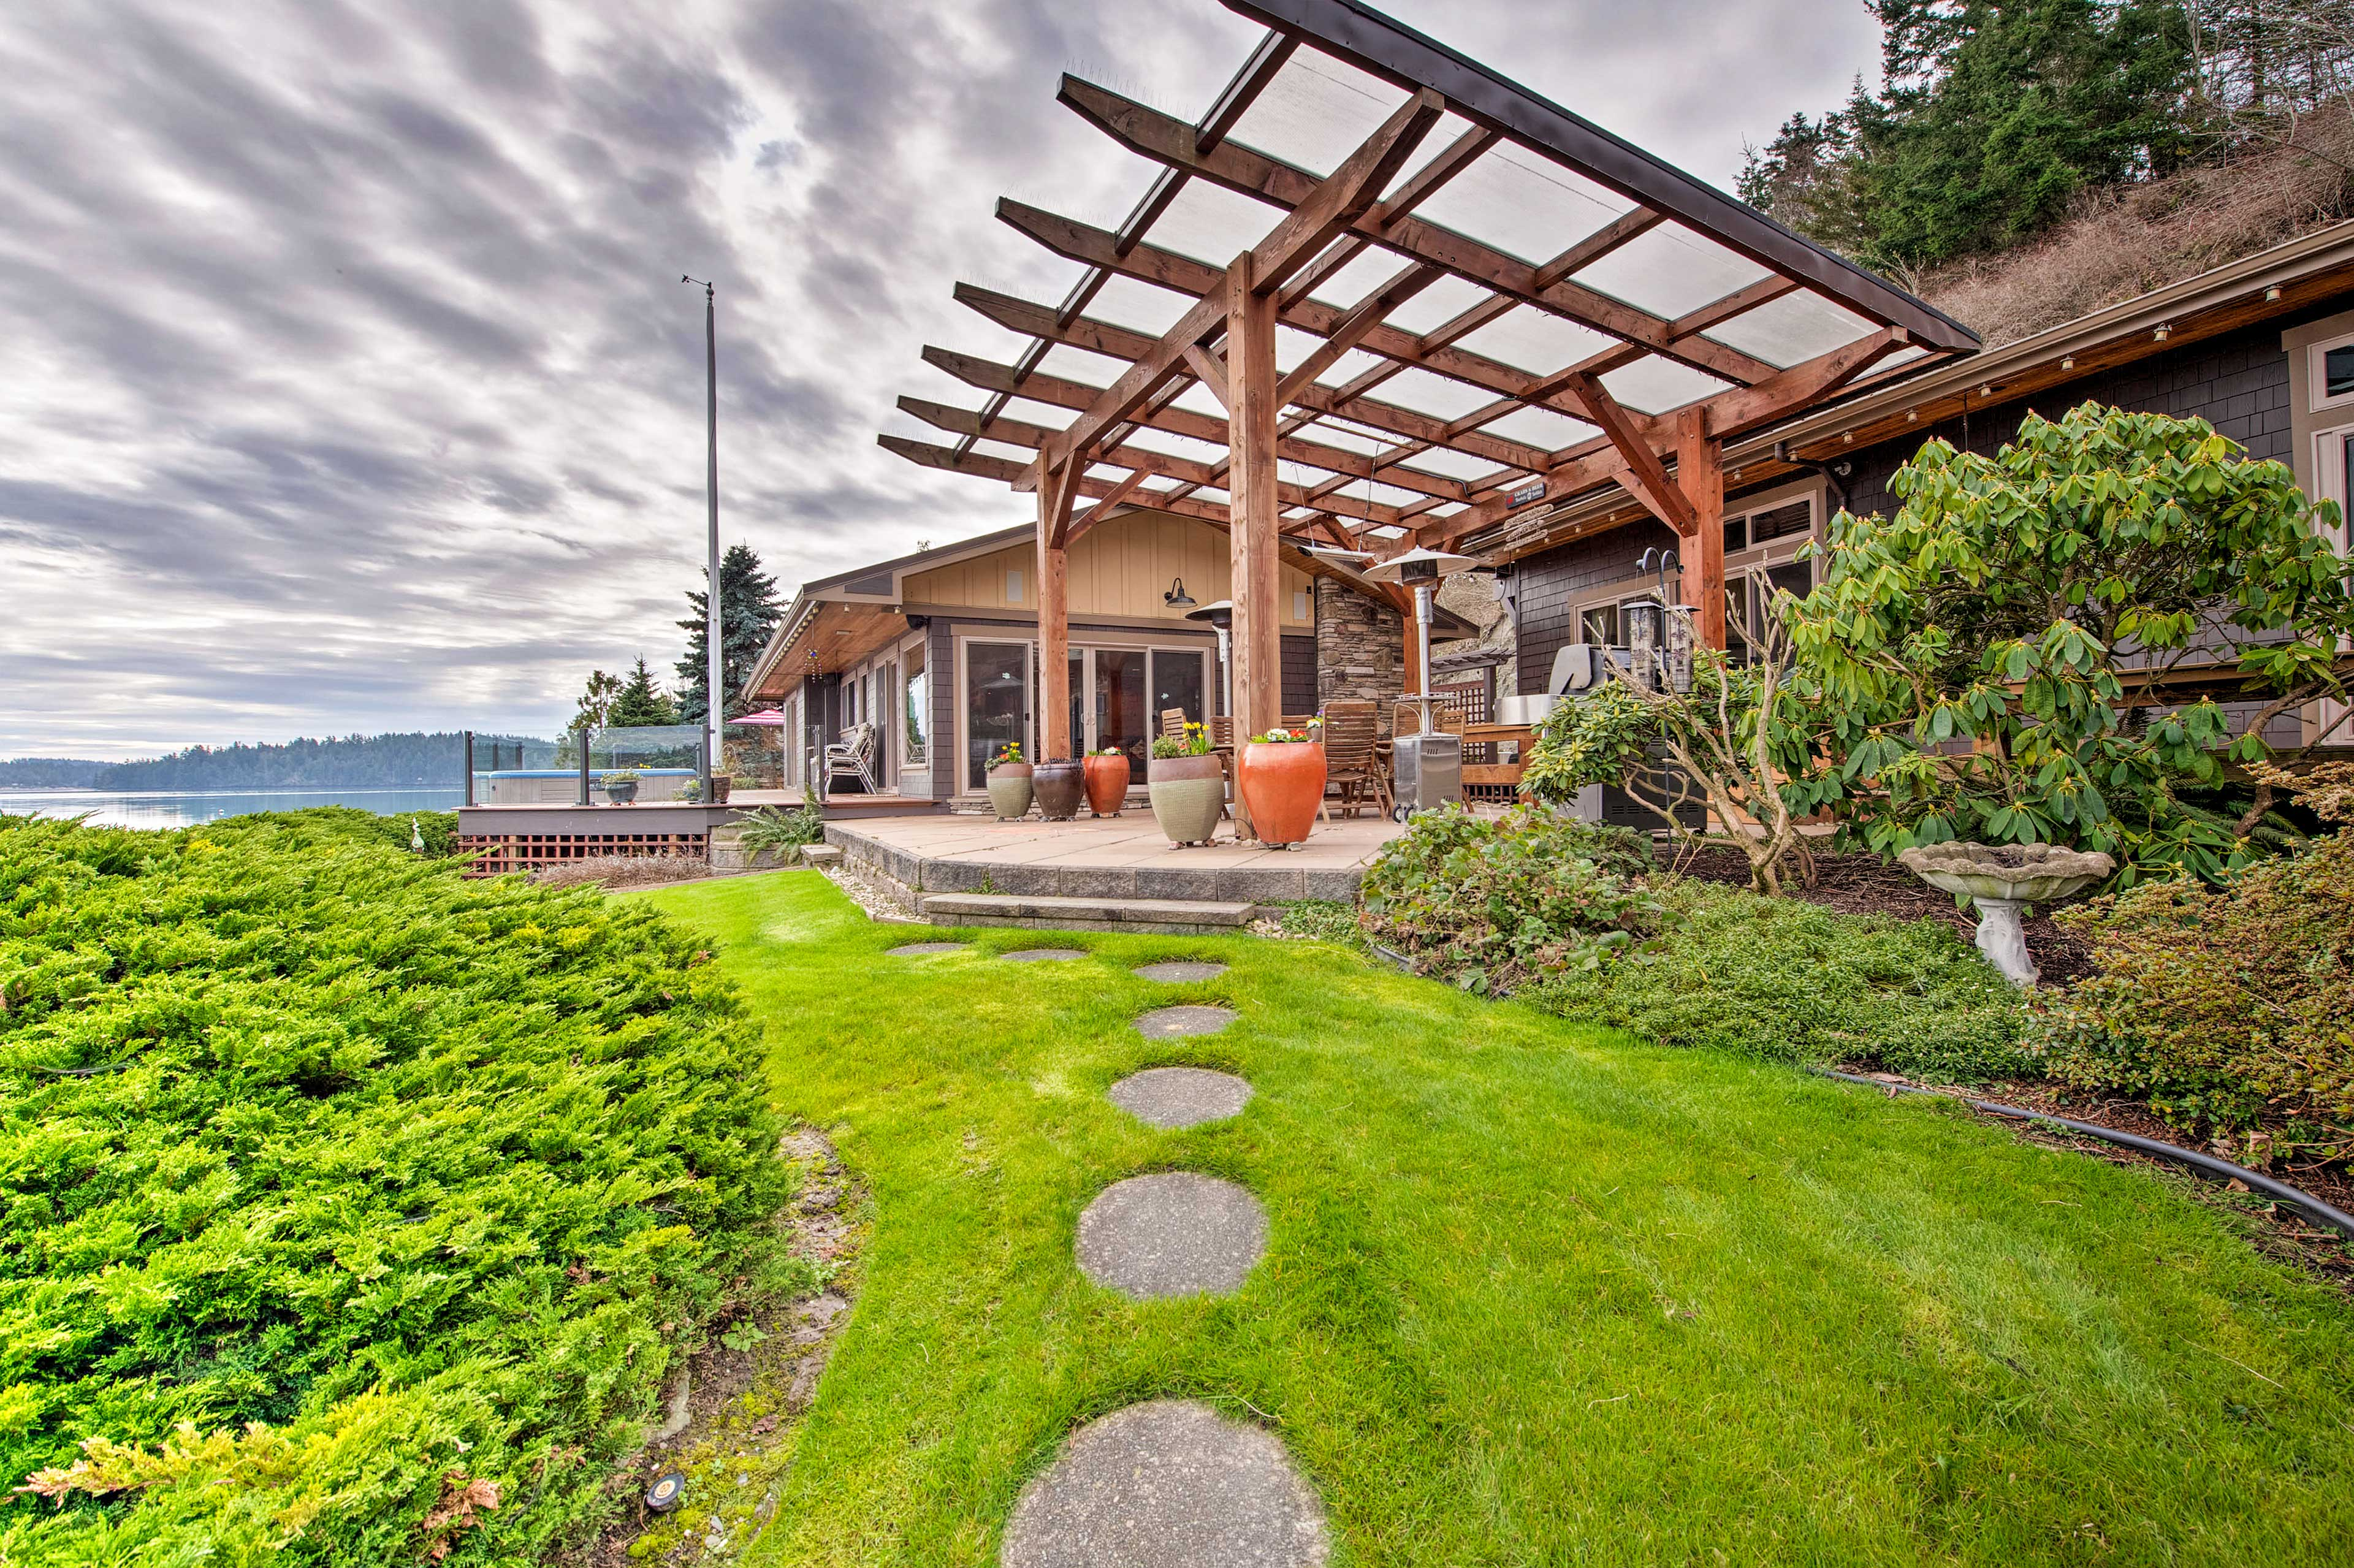 This private home offers a breathtaking landscaping.